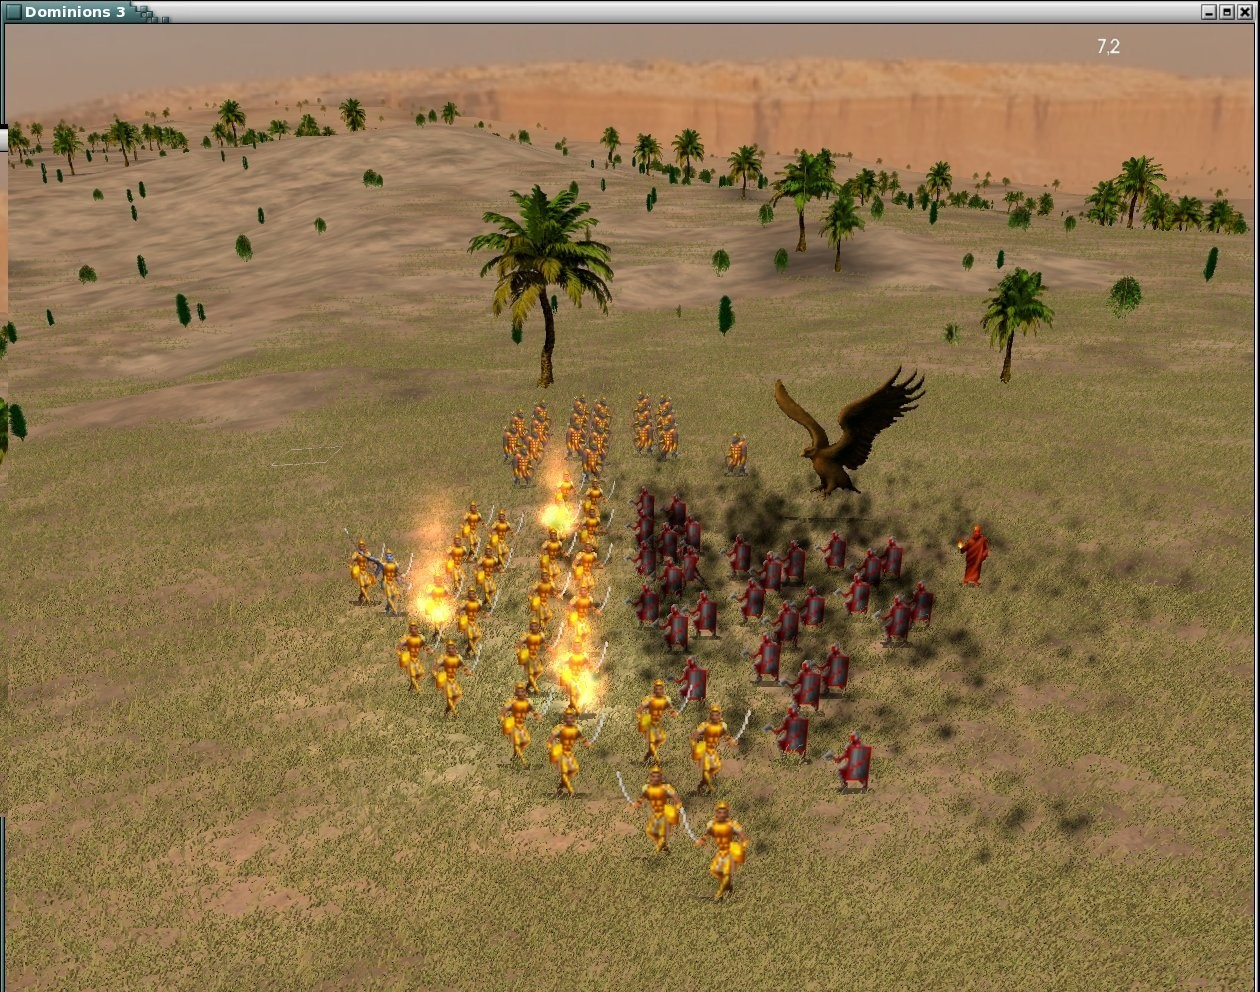 Dominions 3 for Linux